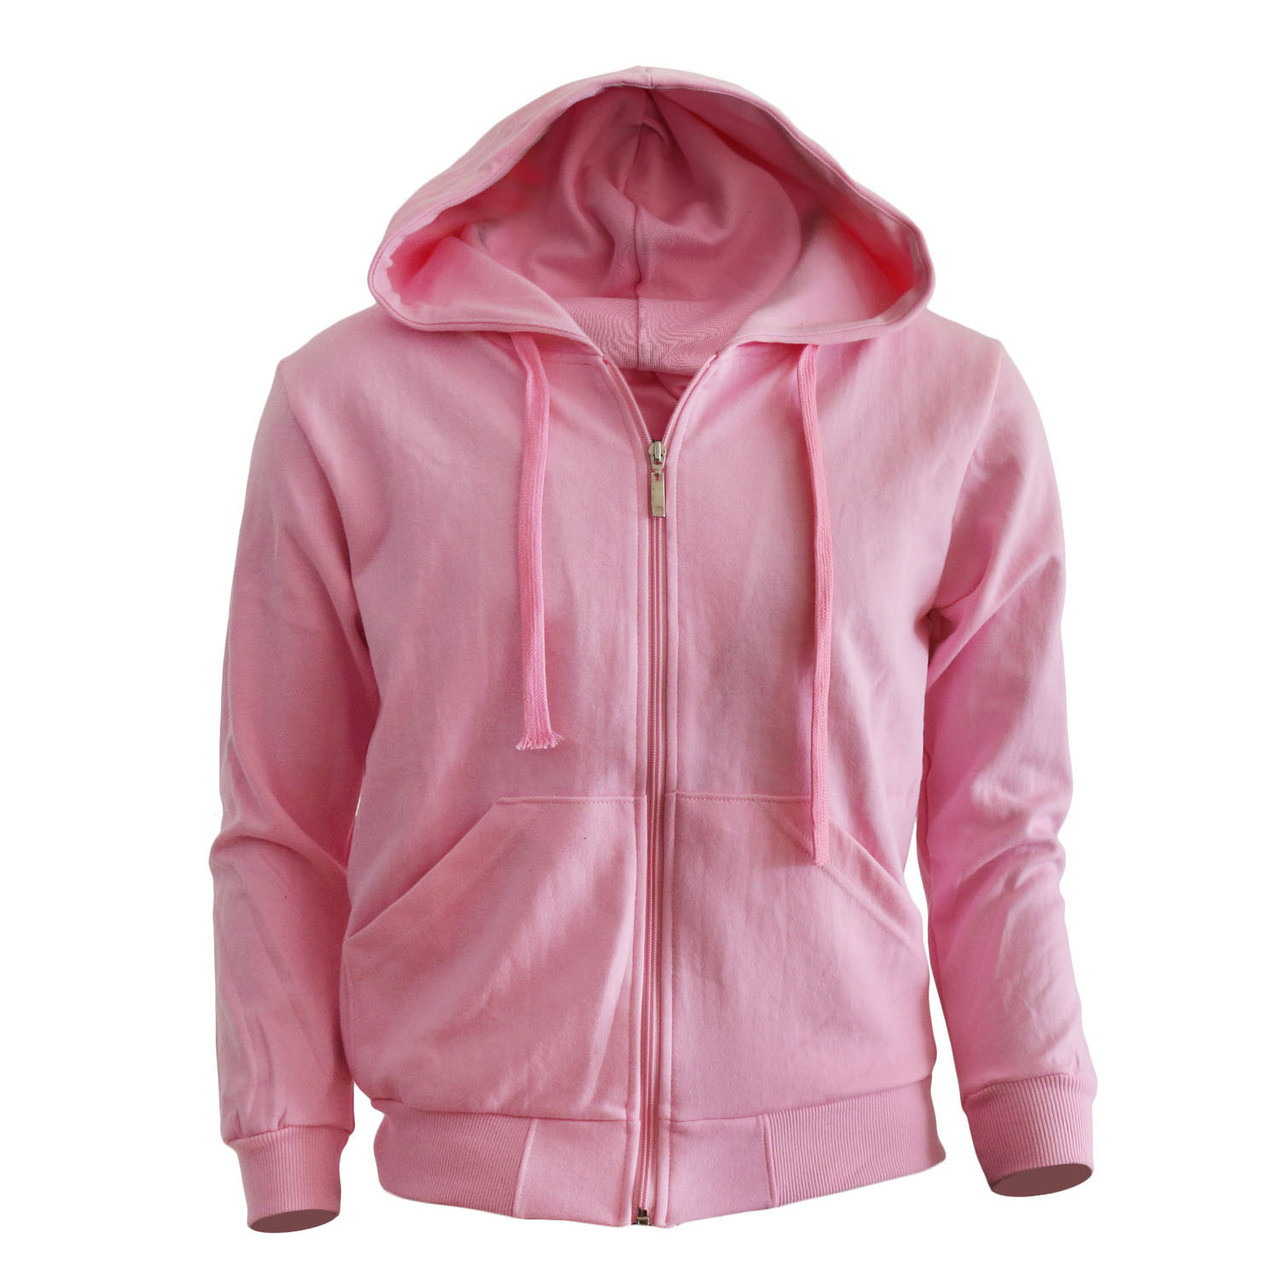 Light Pink Hoodie T Shirt For Unisex Cotton Hoodie T Shirt